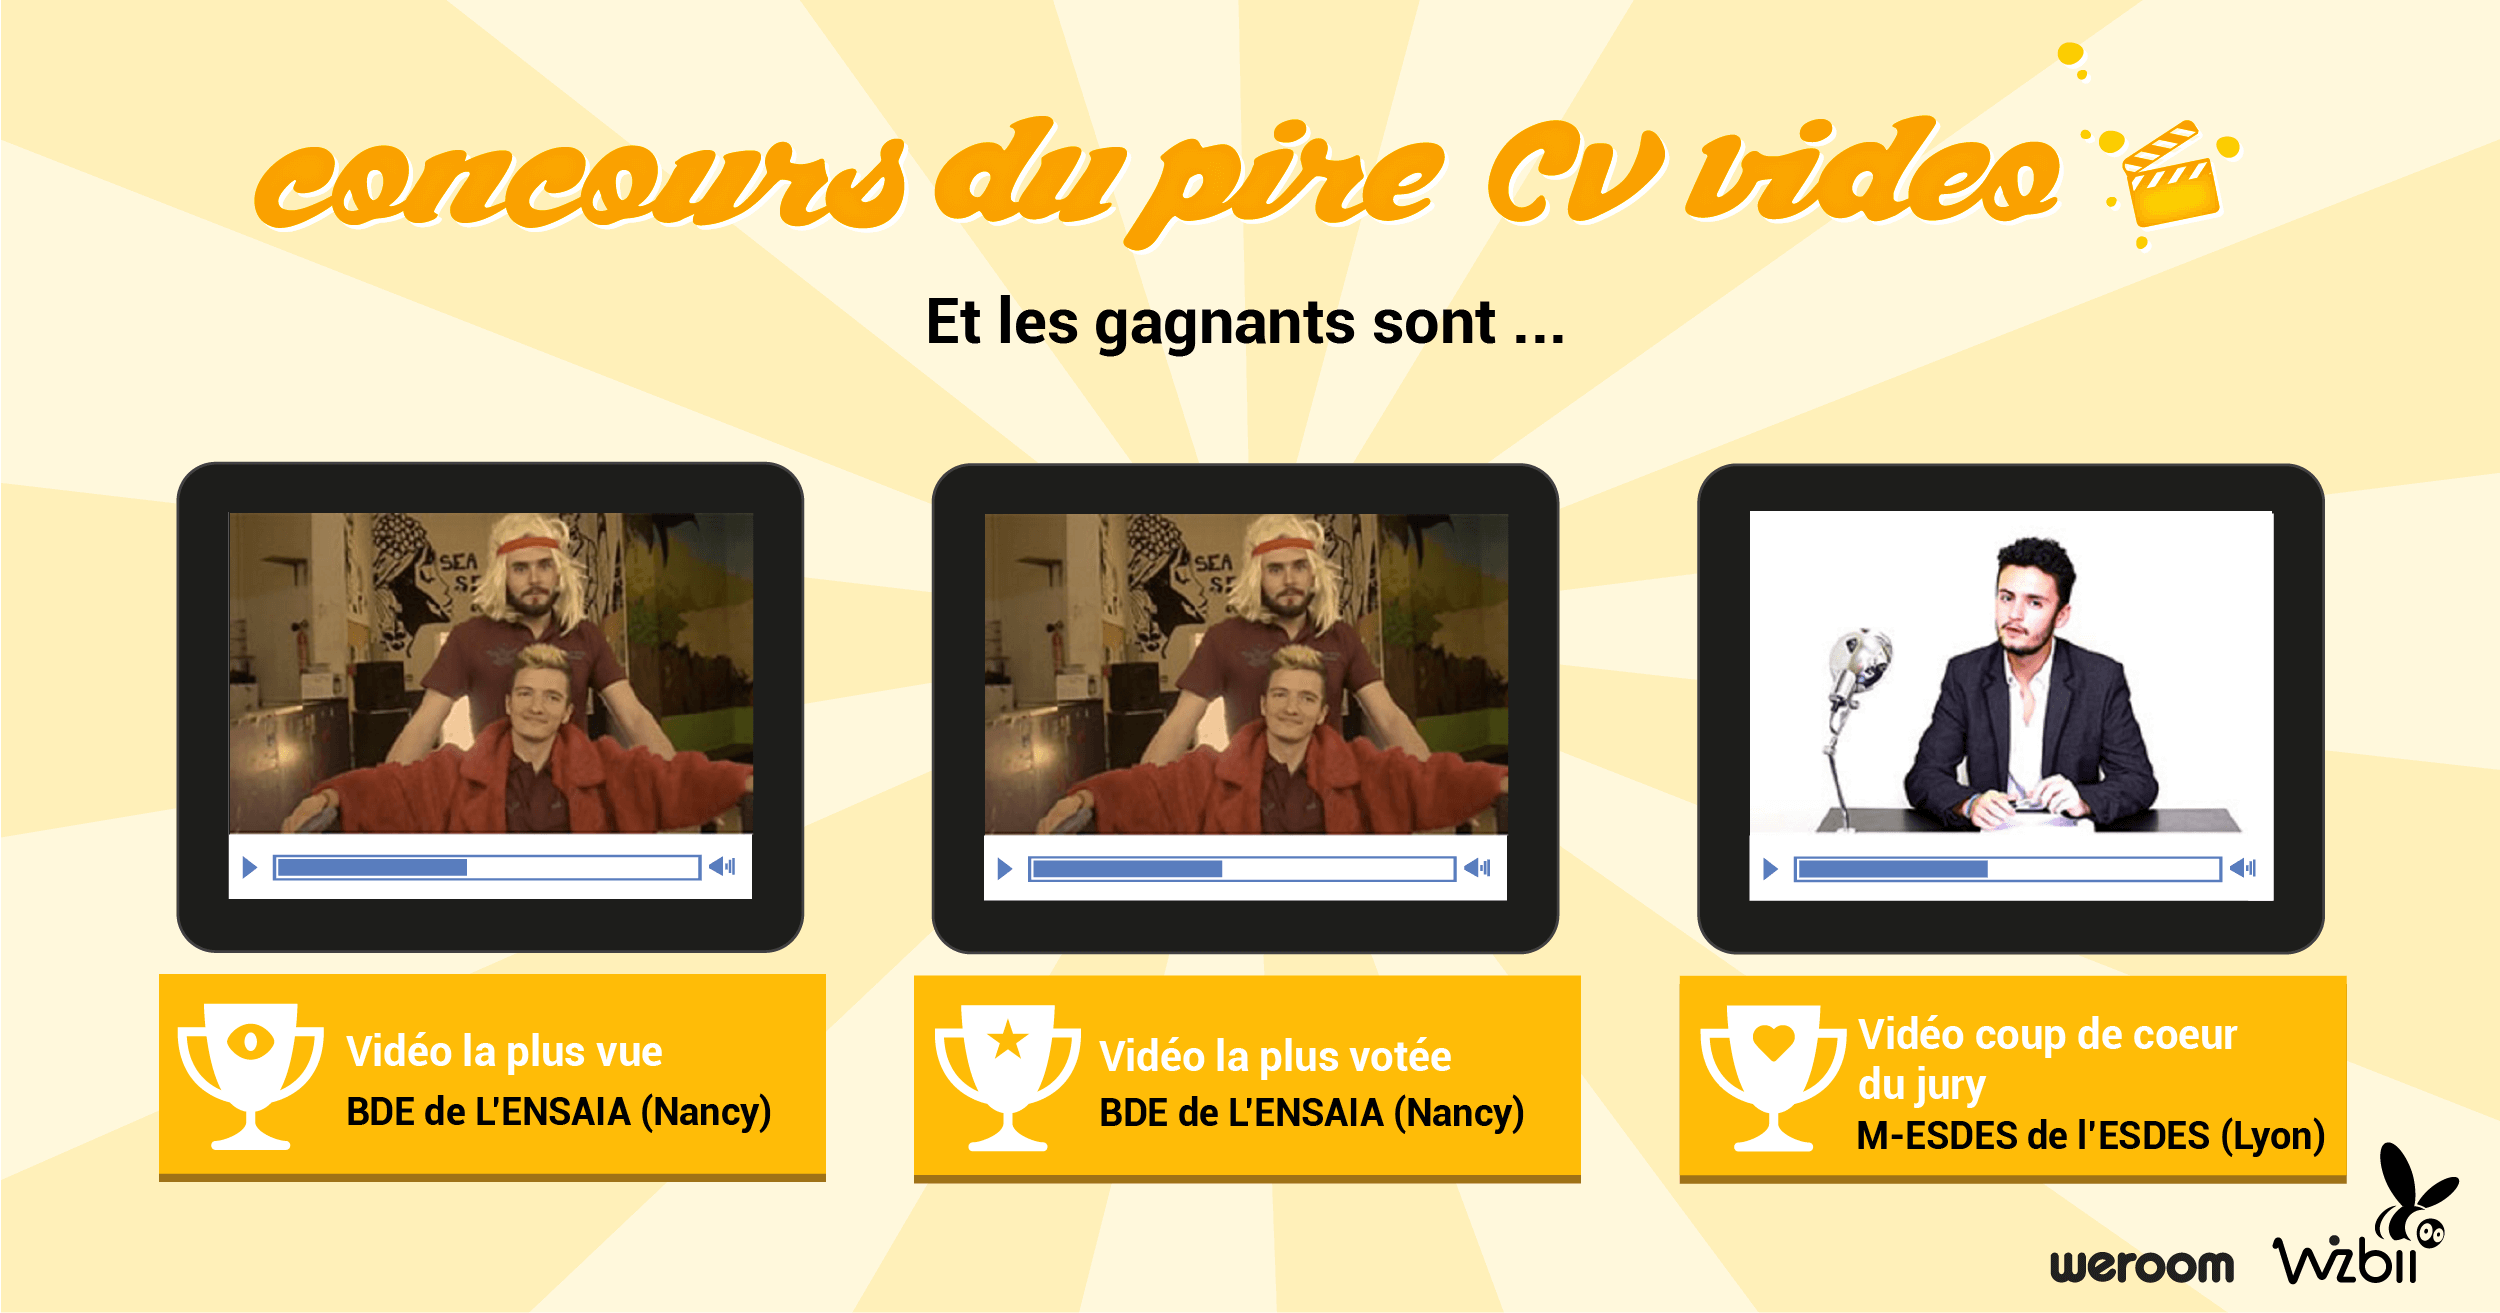 pire cv video gagnants